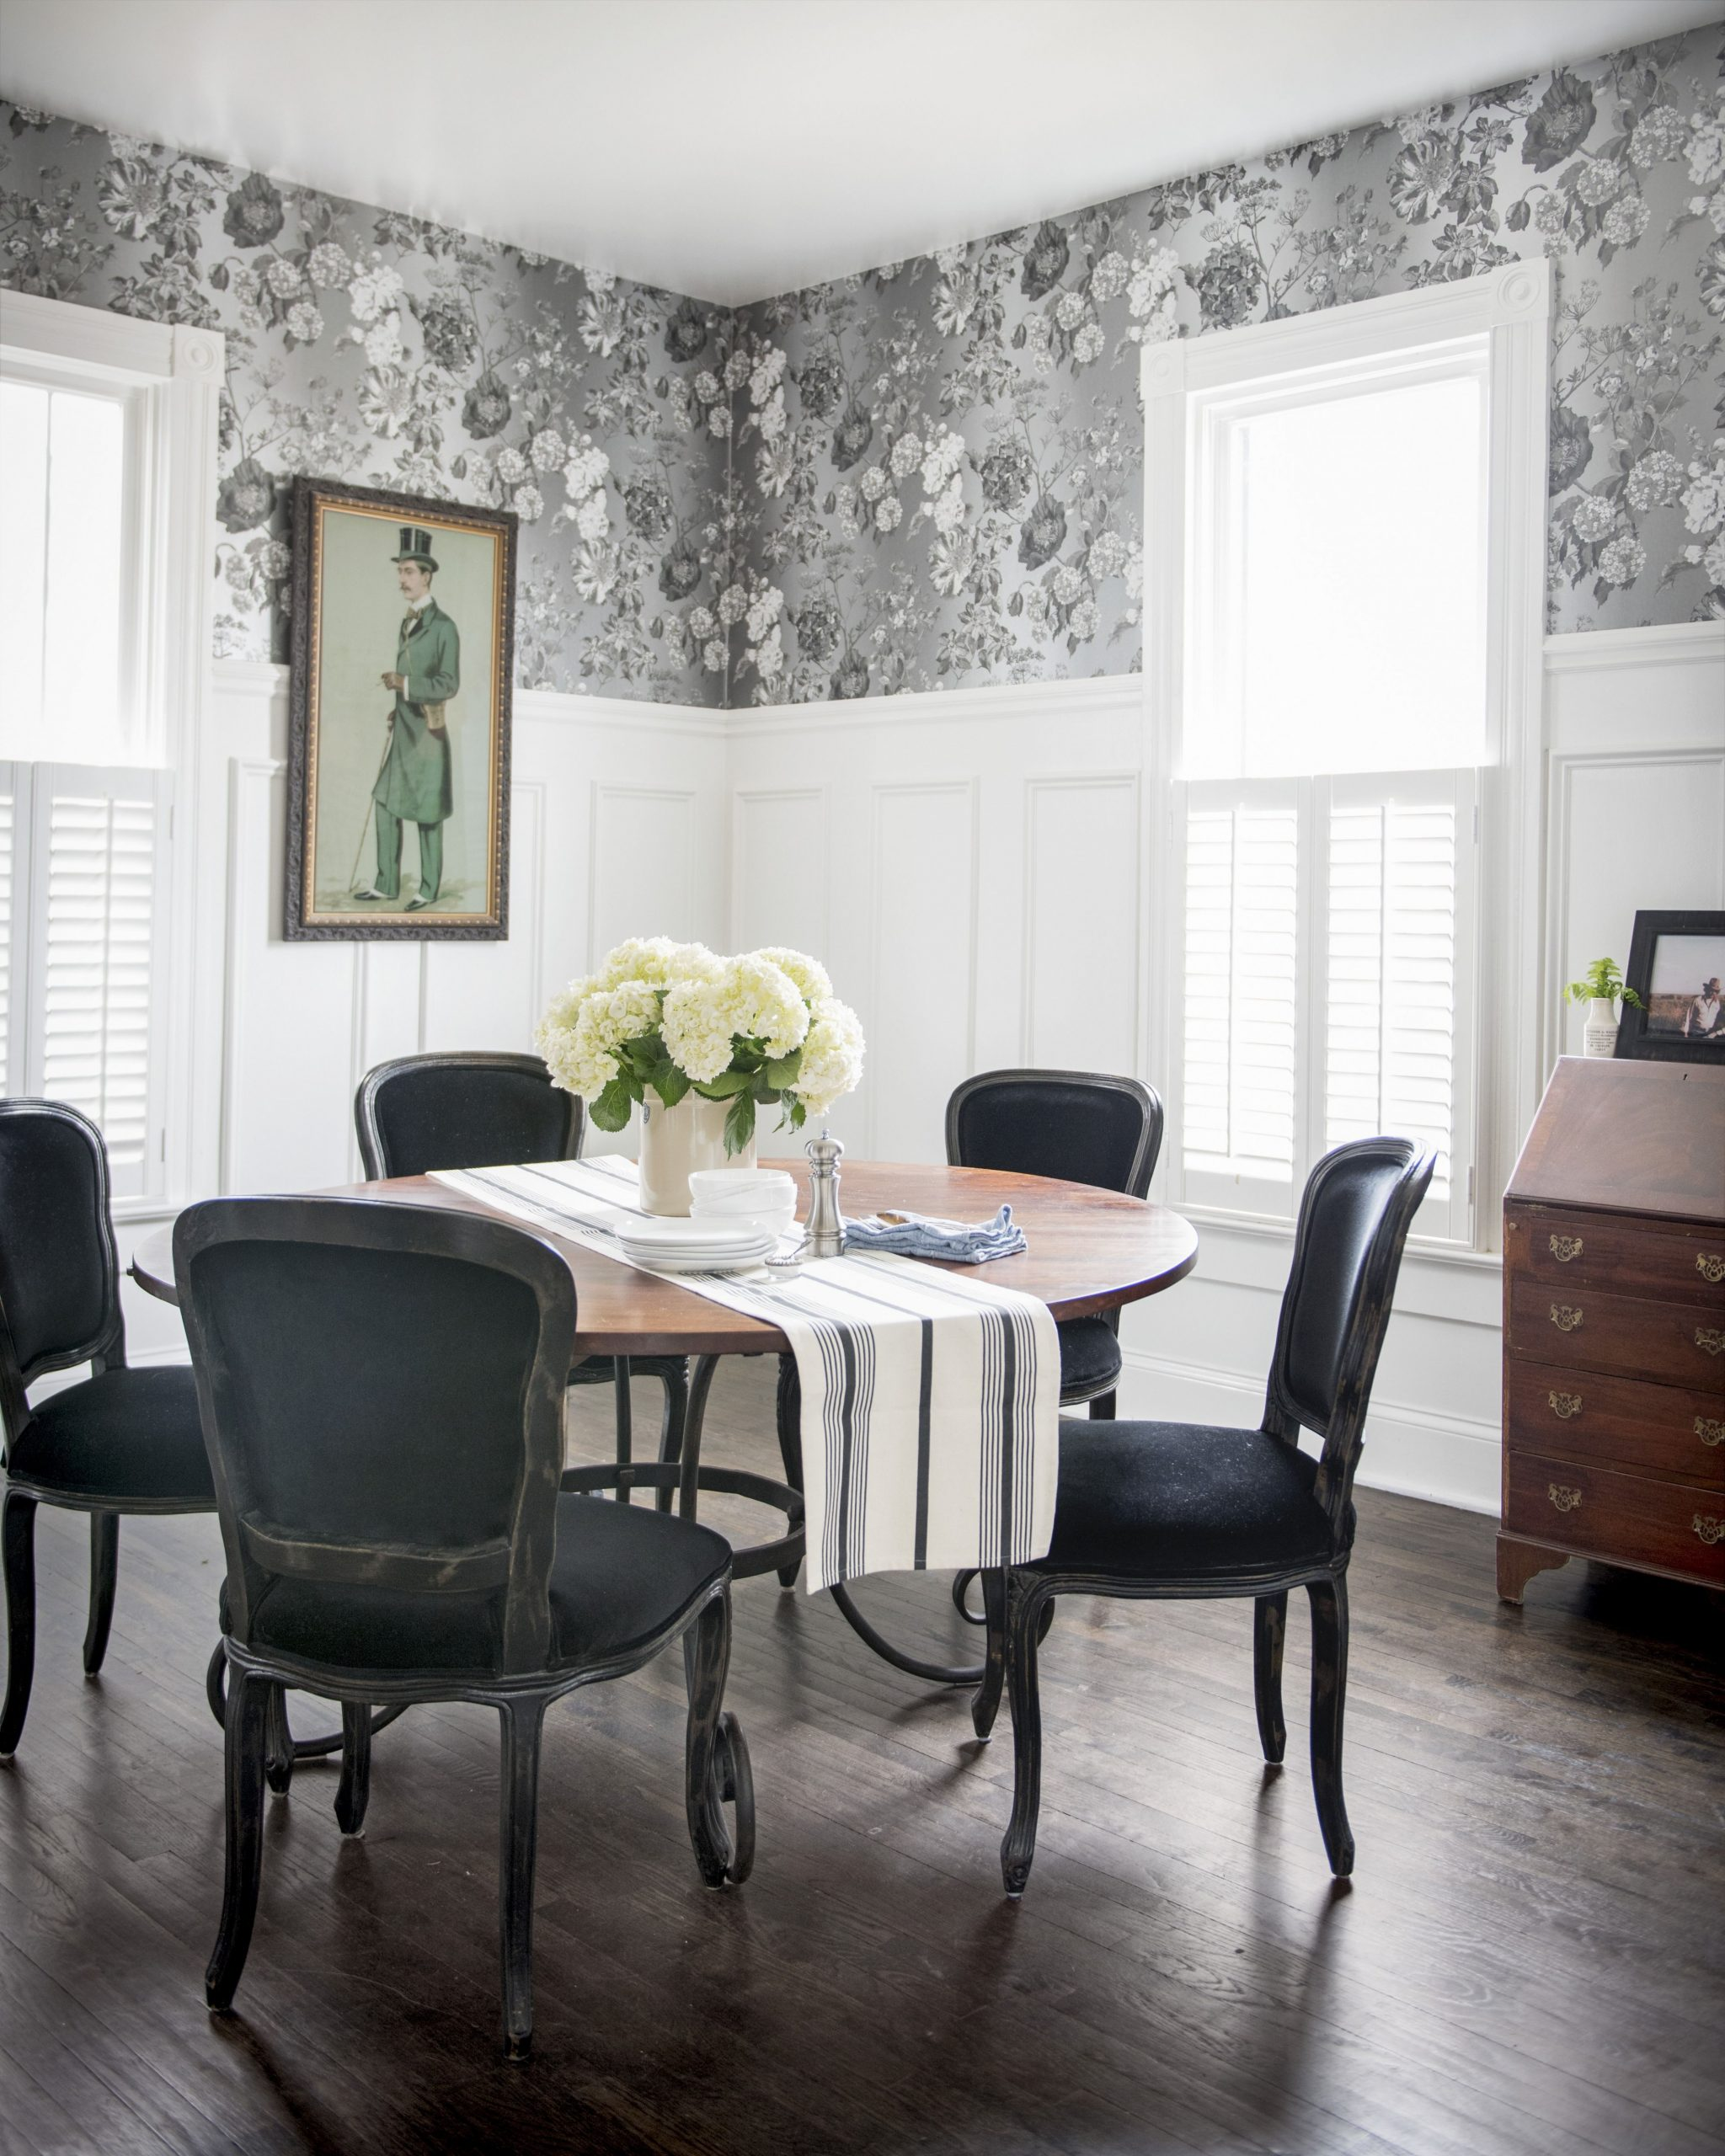 8 Best Dining Room Decorating Ideas - Pictures of Dining Room Decor - Dining Room Ideas Black And White